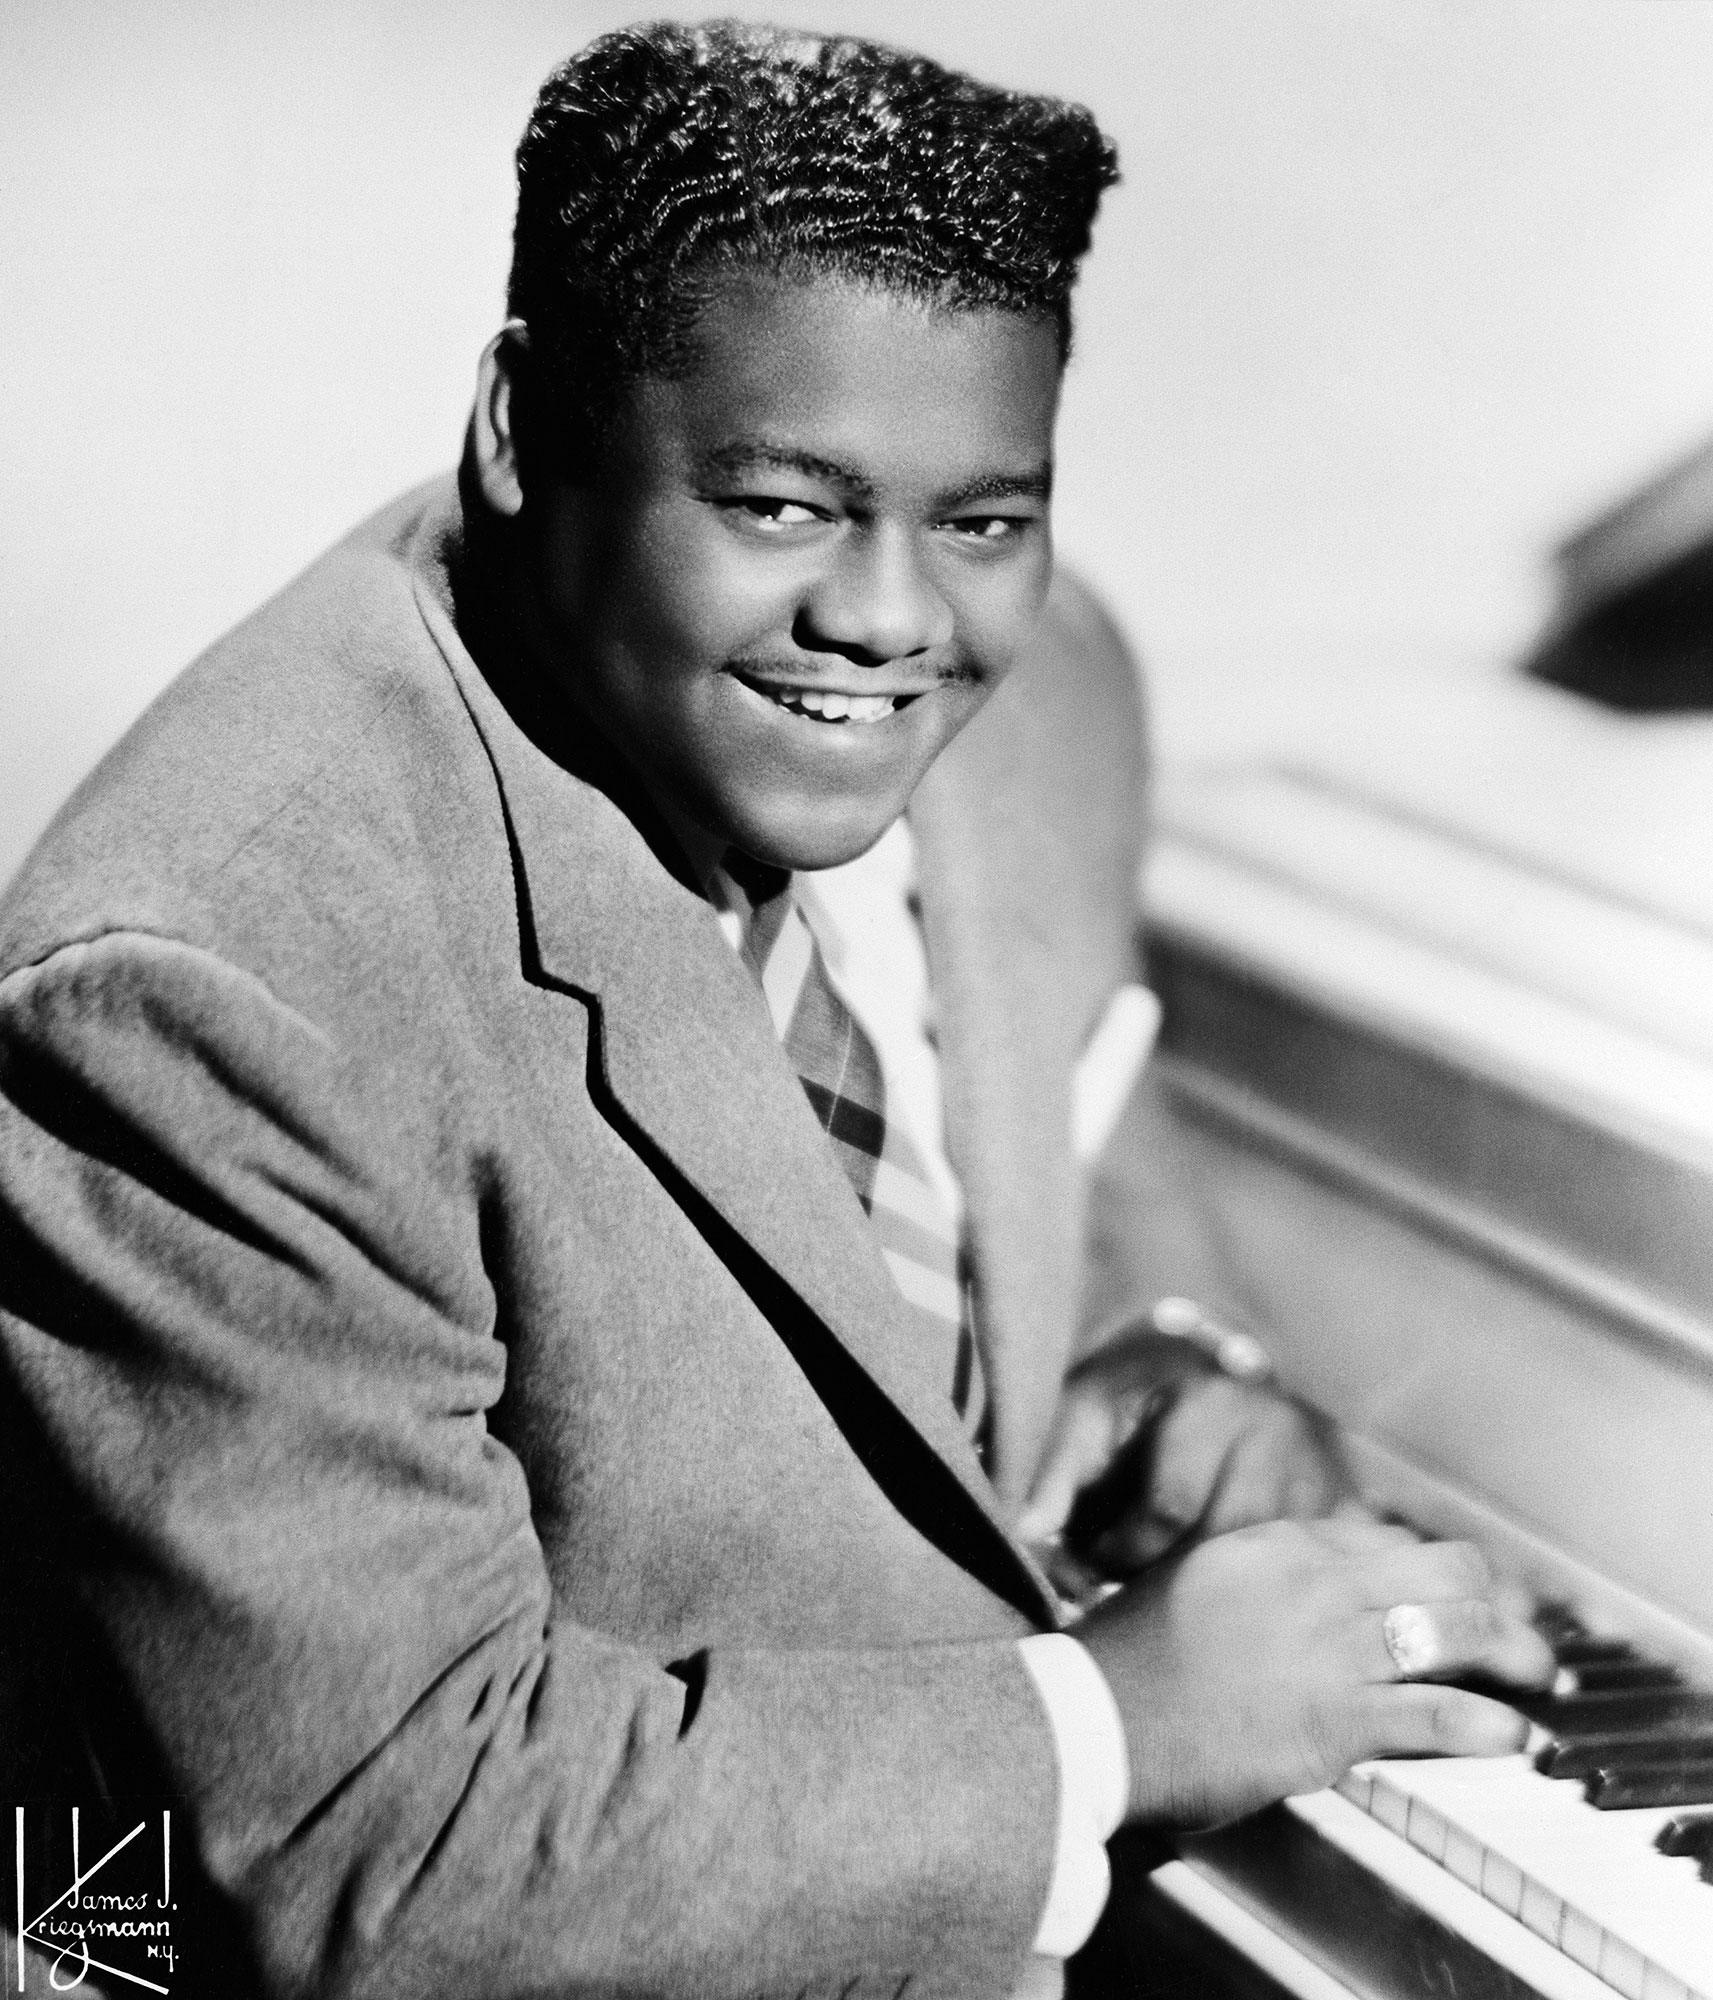 Fats Domino, Rock Pioneer Behind 'Ain't That a Shame' and 'Blueberry Hill,' Dead at 89